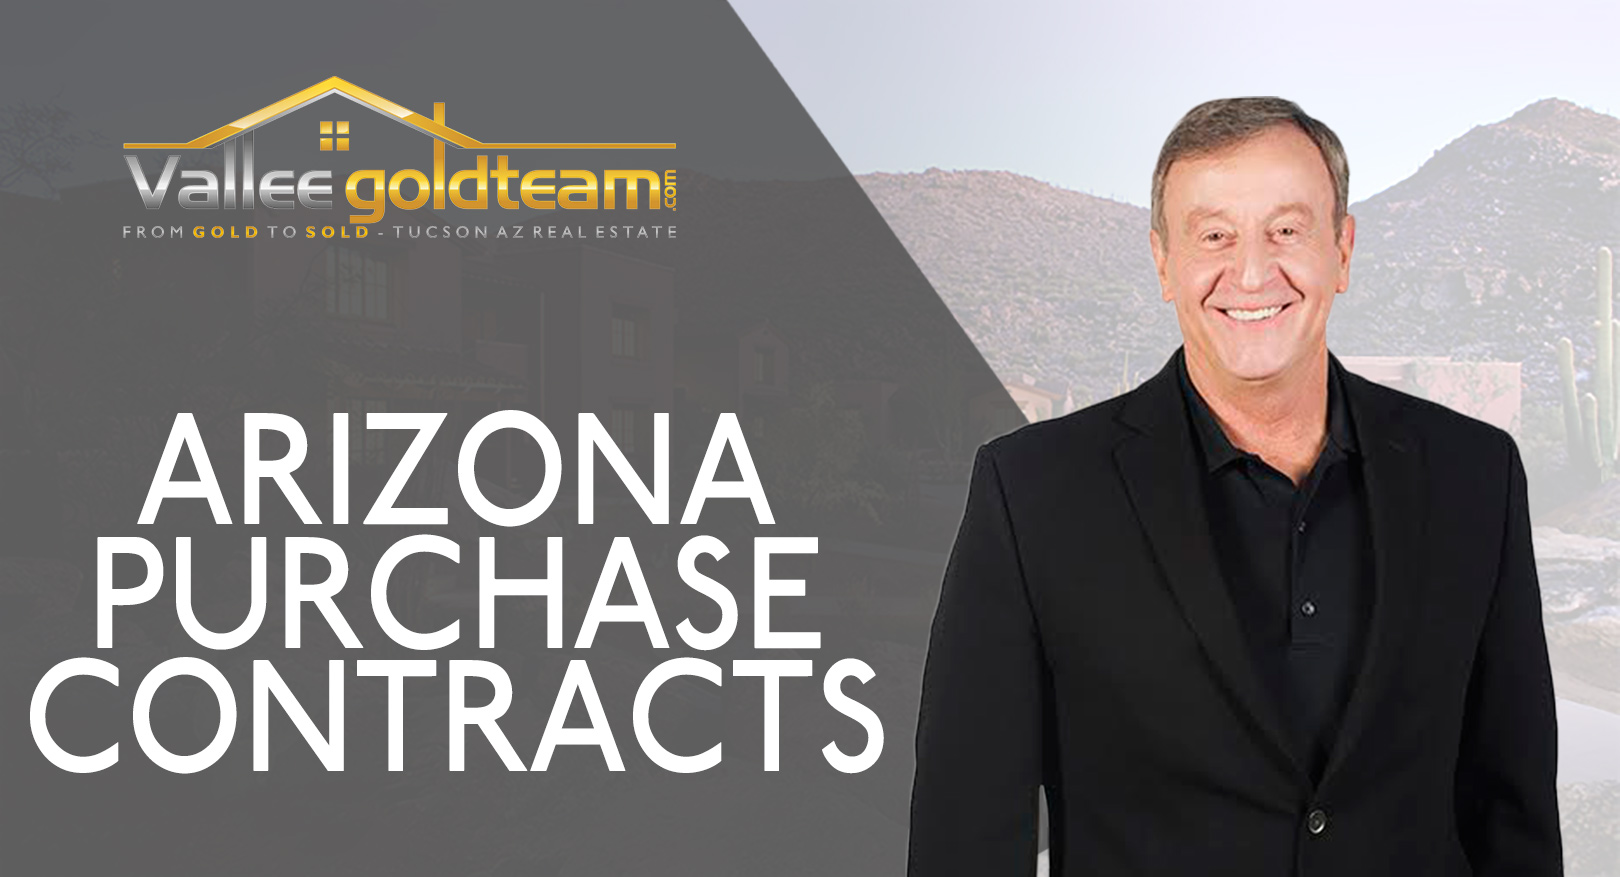 What You Need to Know About Arizona Purchase Contracts